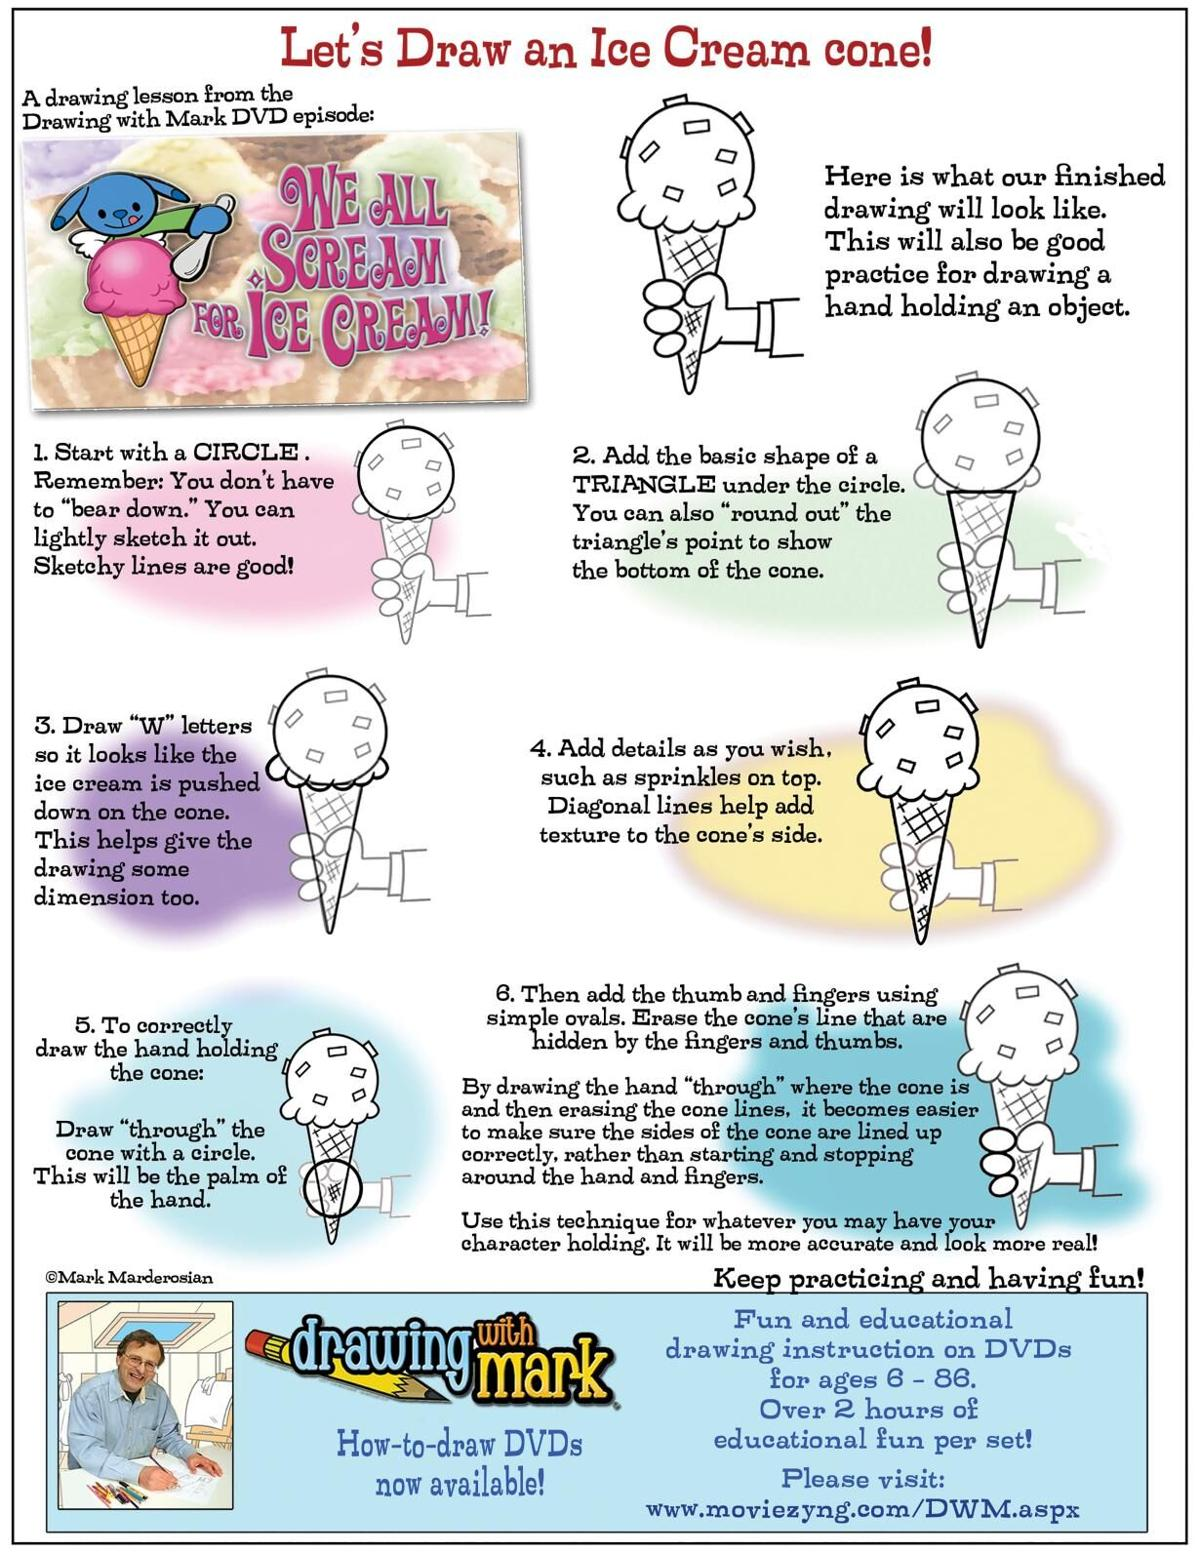 Draw an ice cream cone with Mark